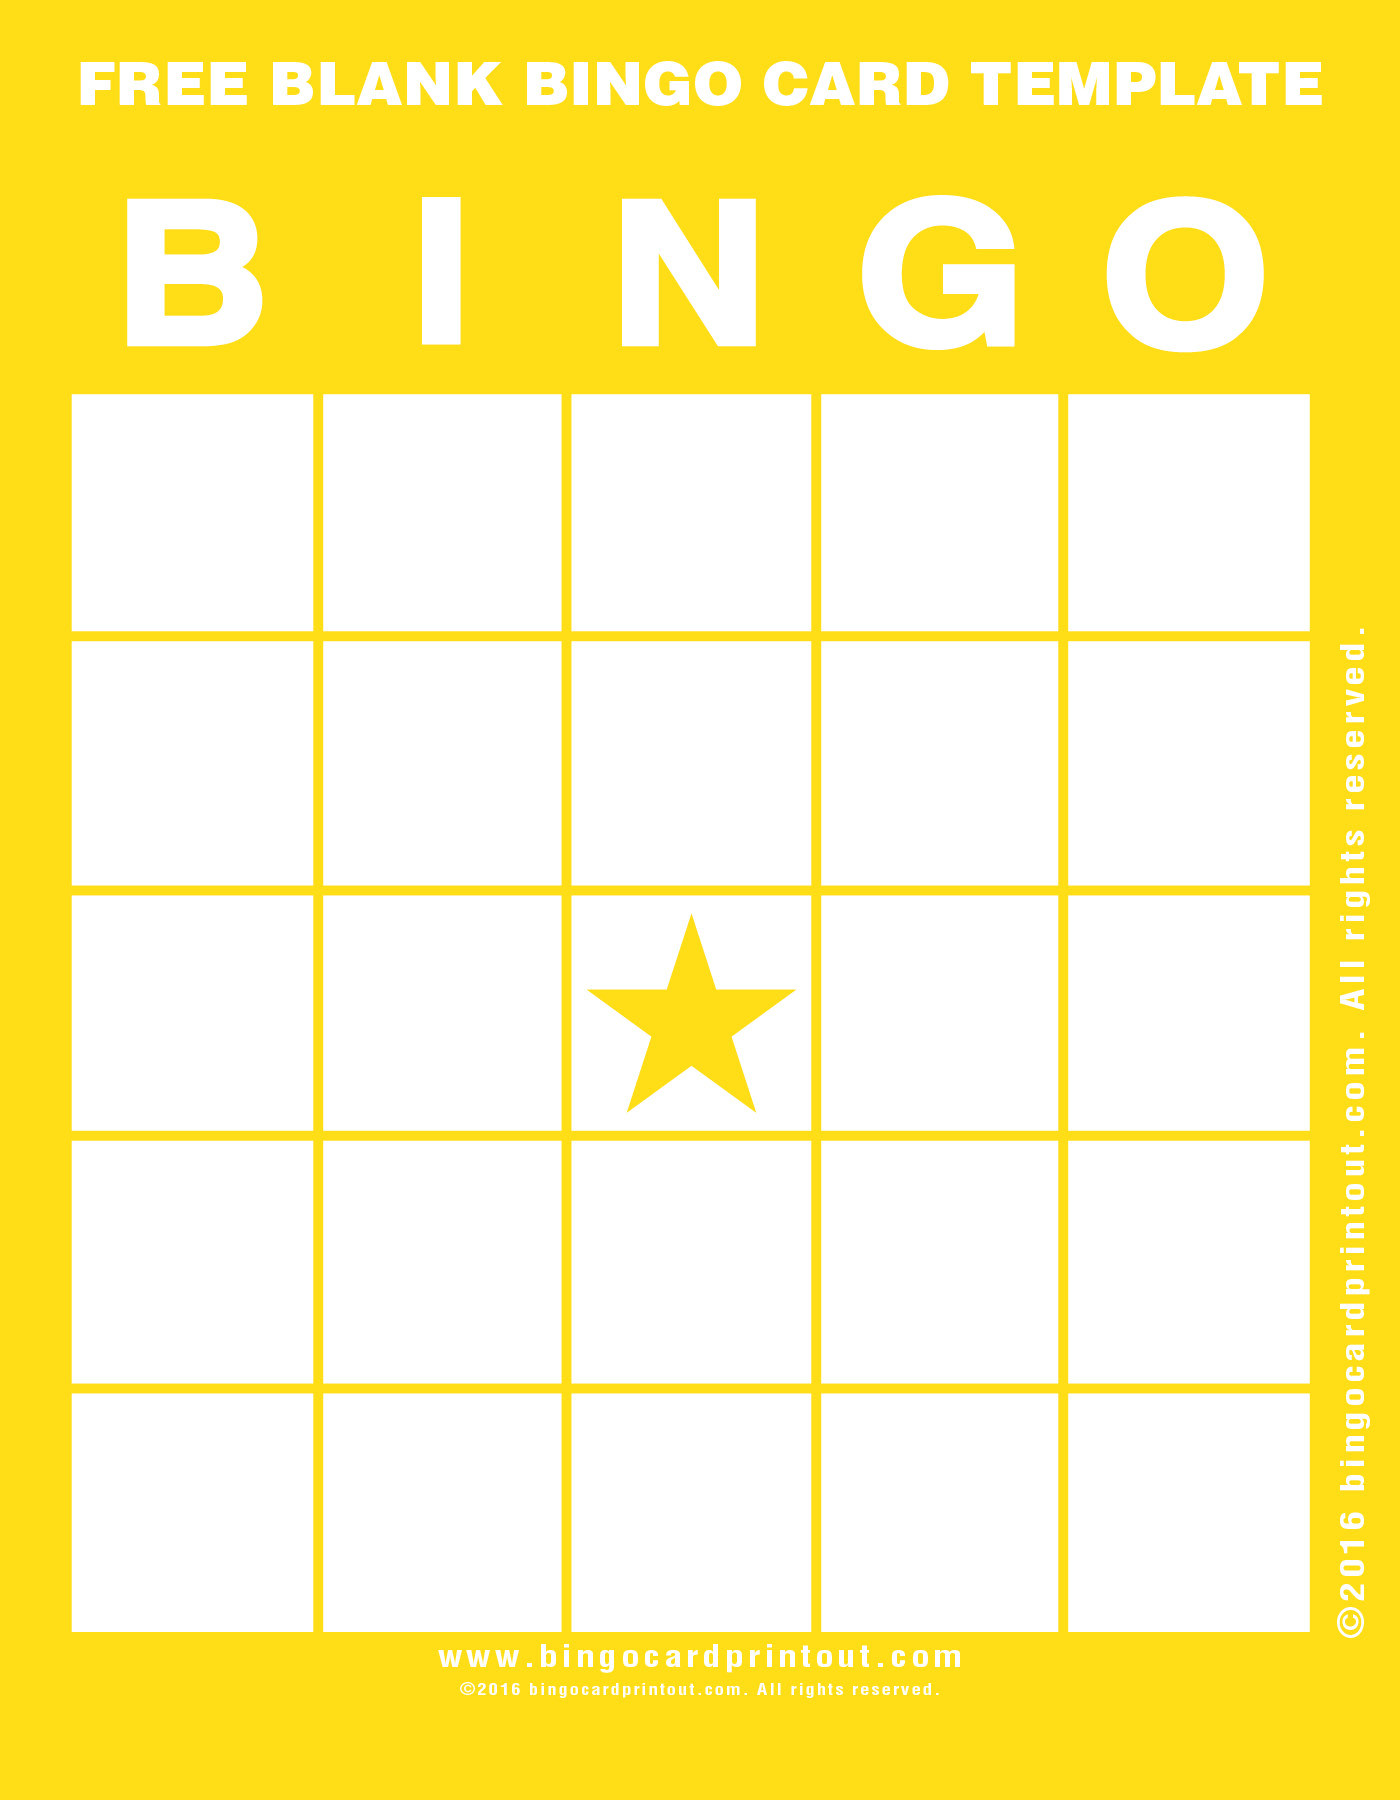 Bingo Card Template Free